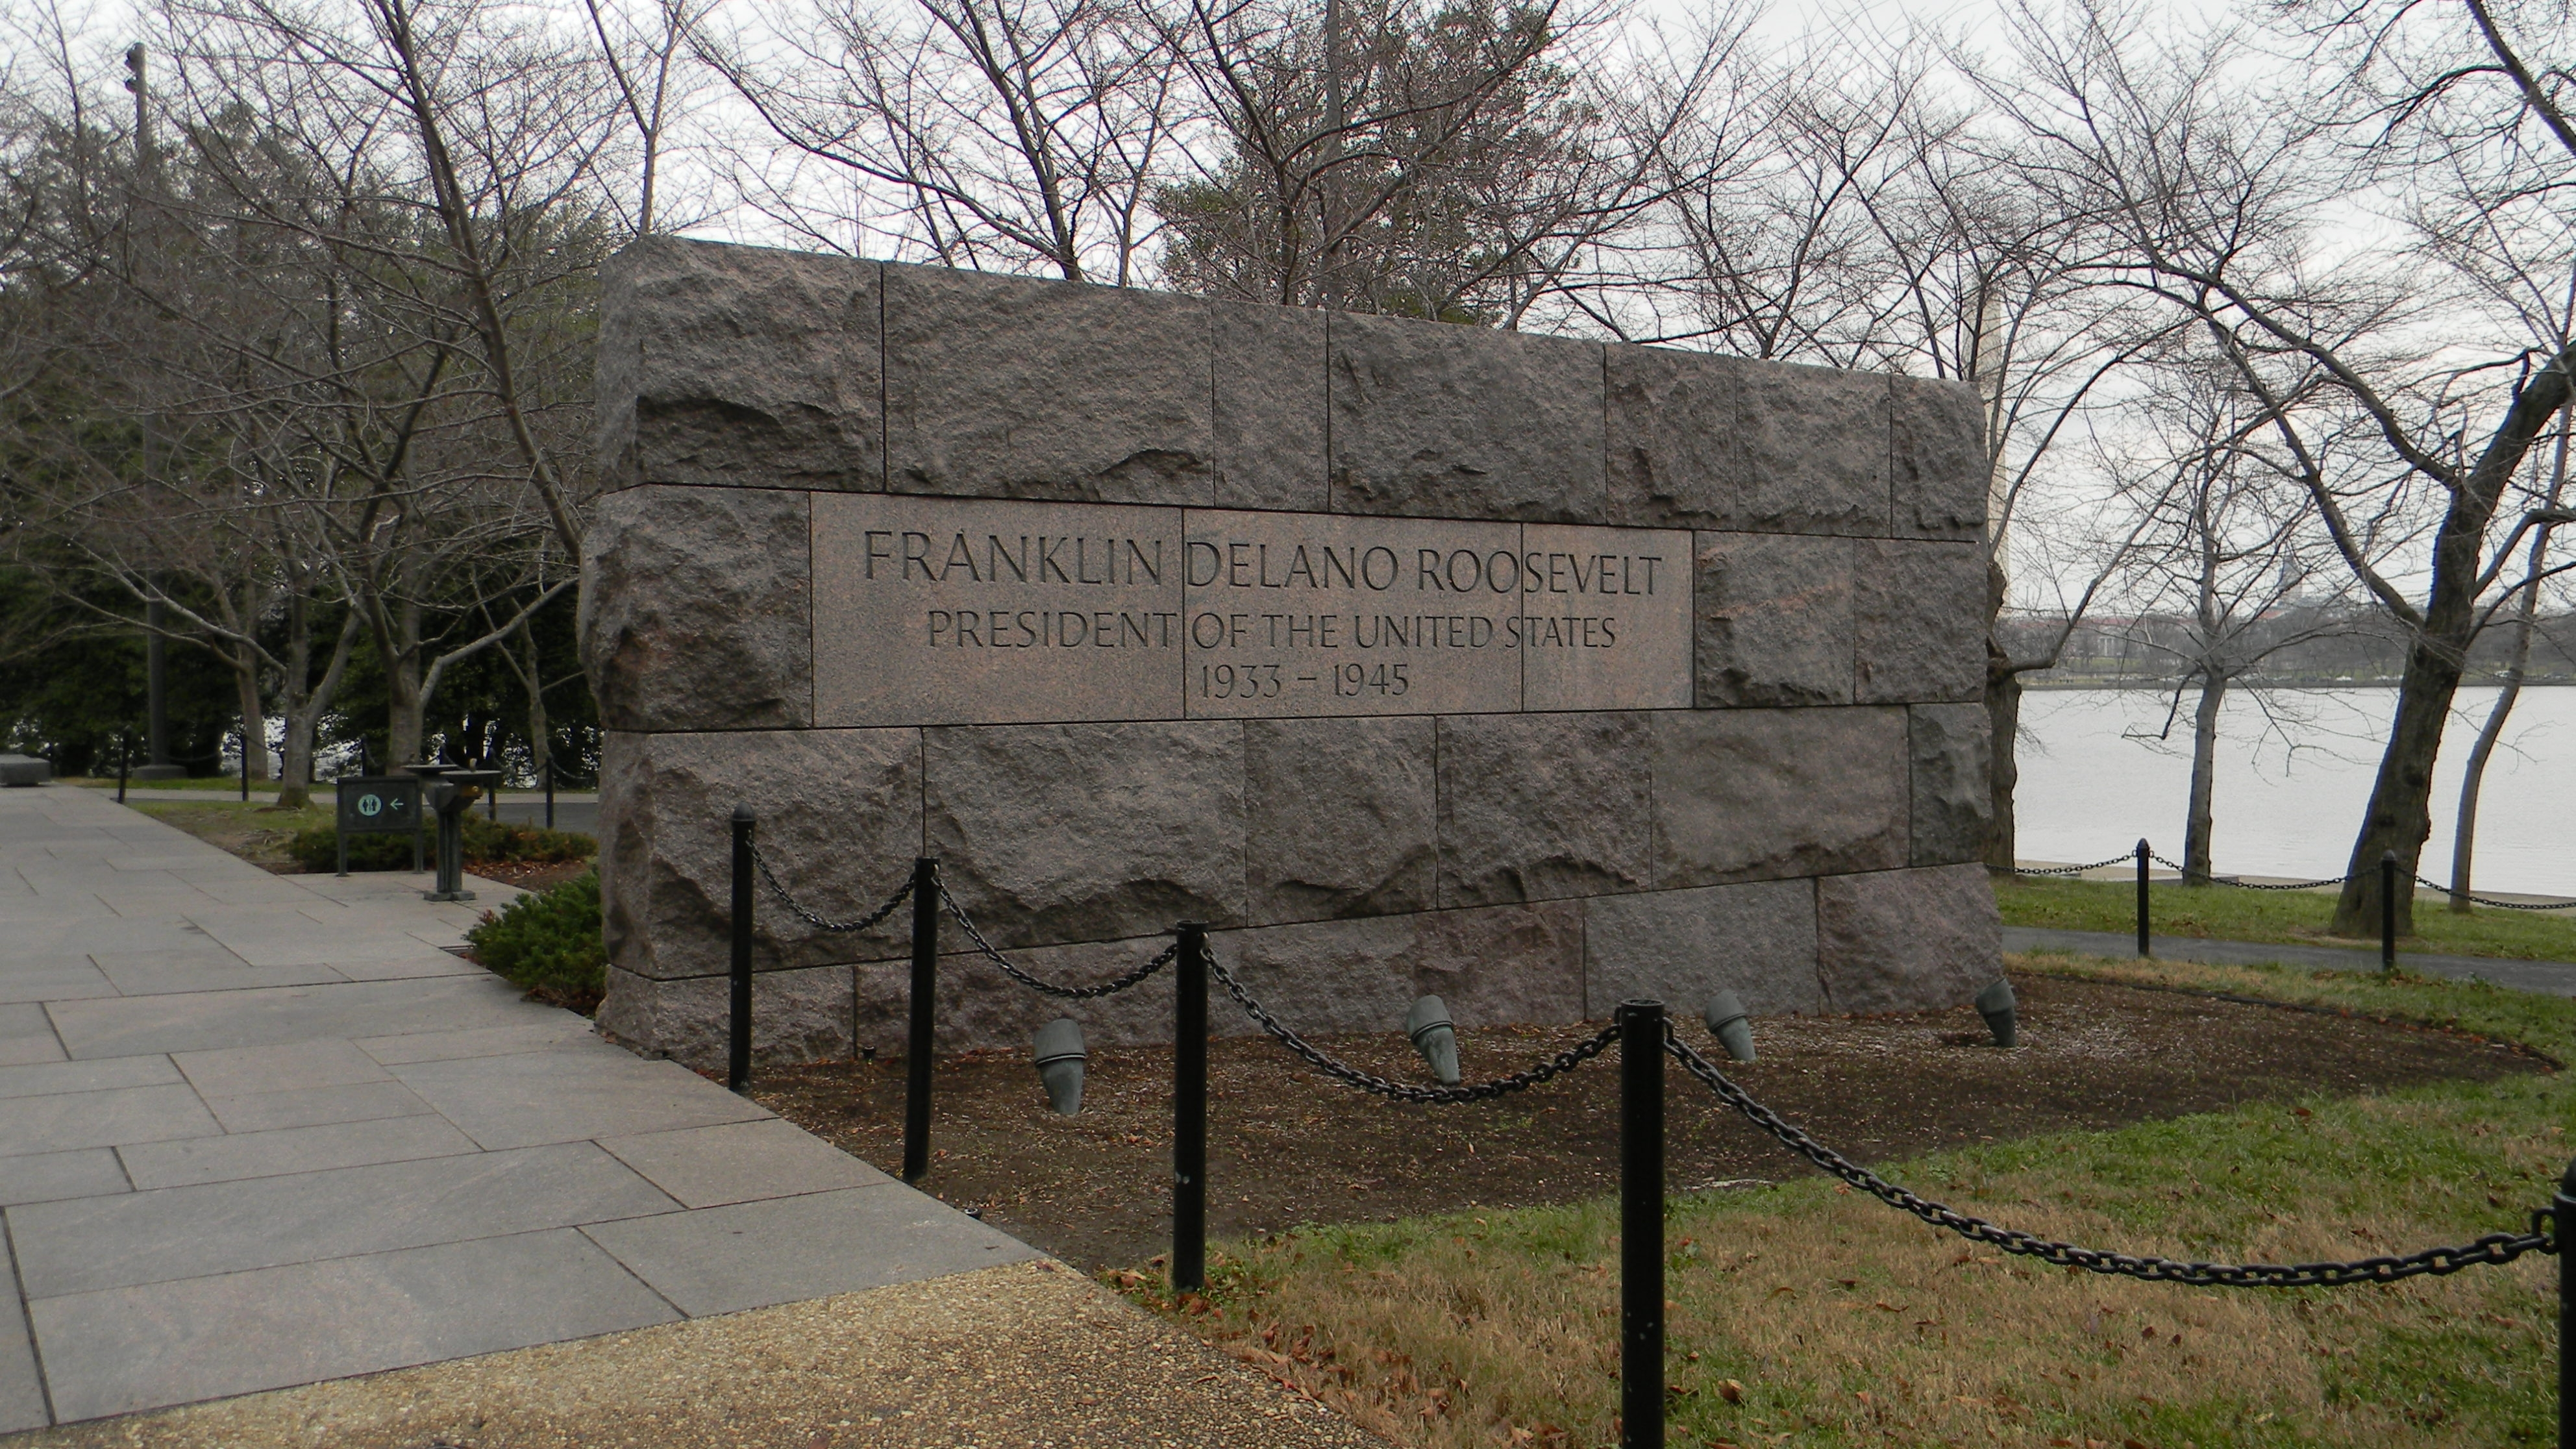 The southeast entrance to the Franklin Delano Roosevelt Memorial -